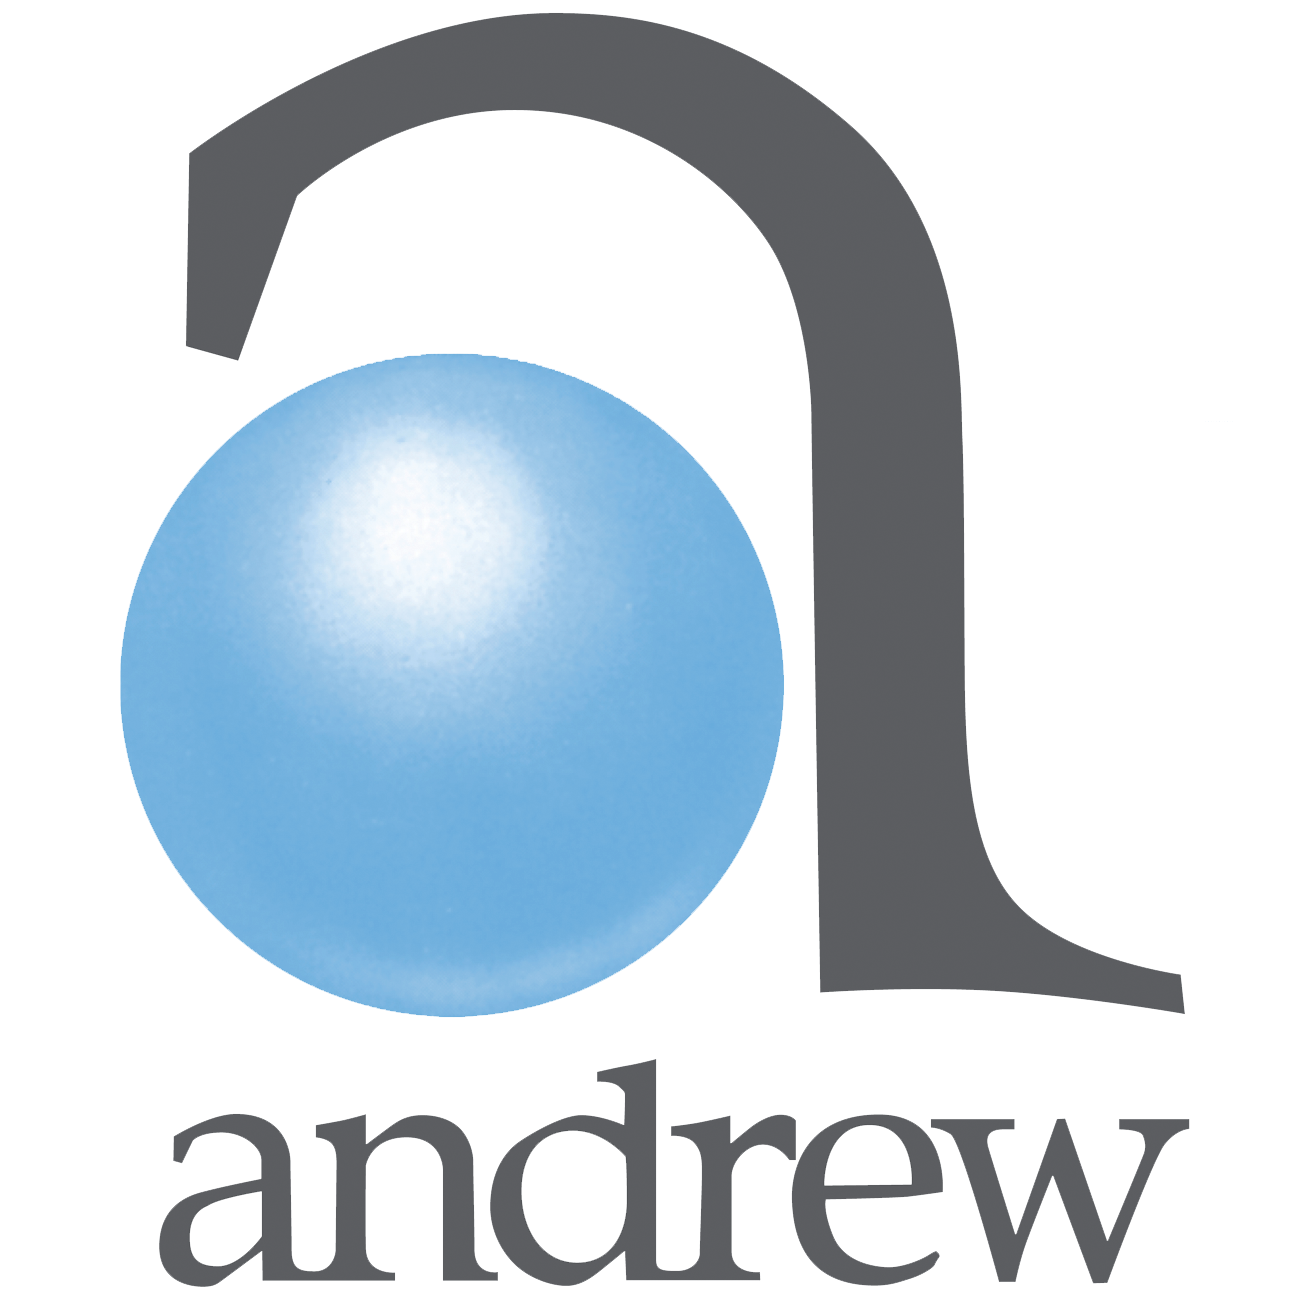 Andrew Engineering Limited